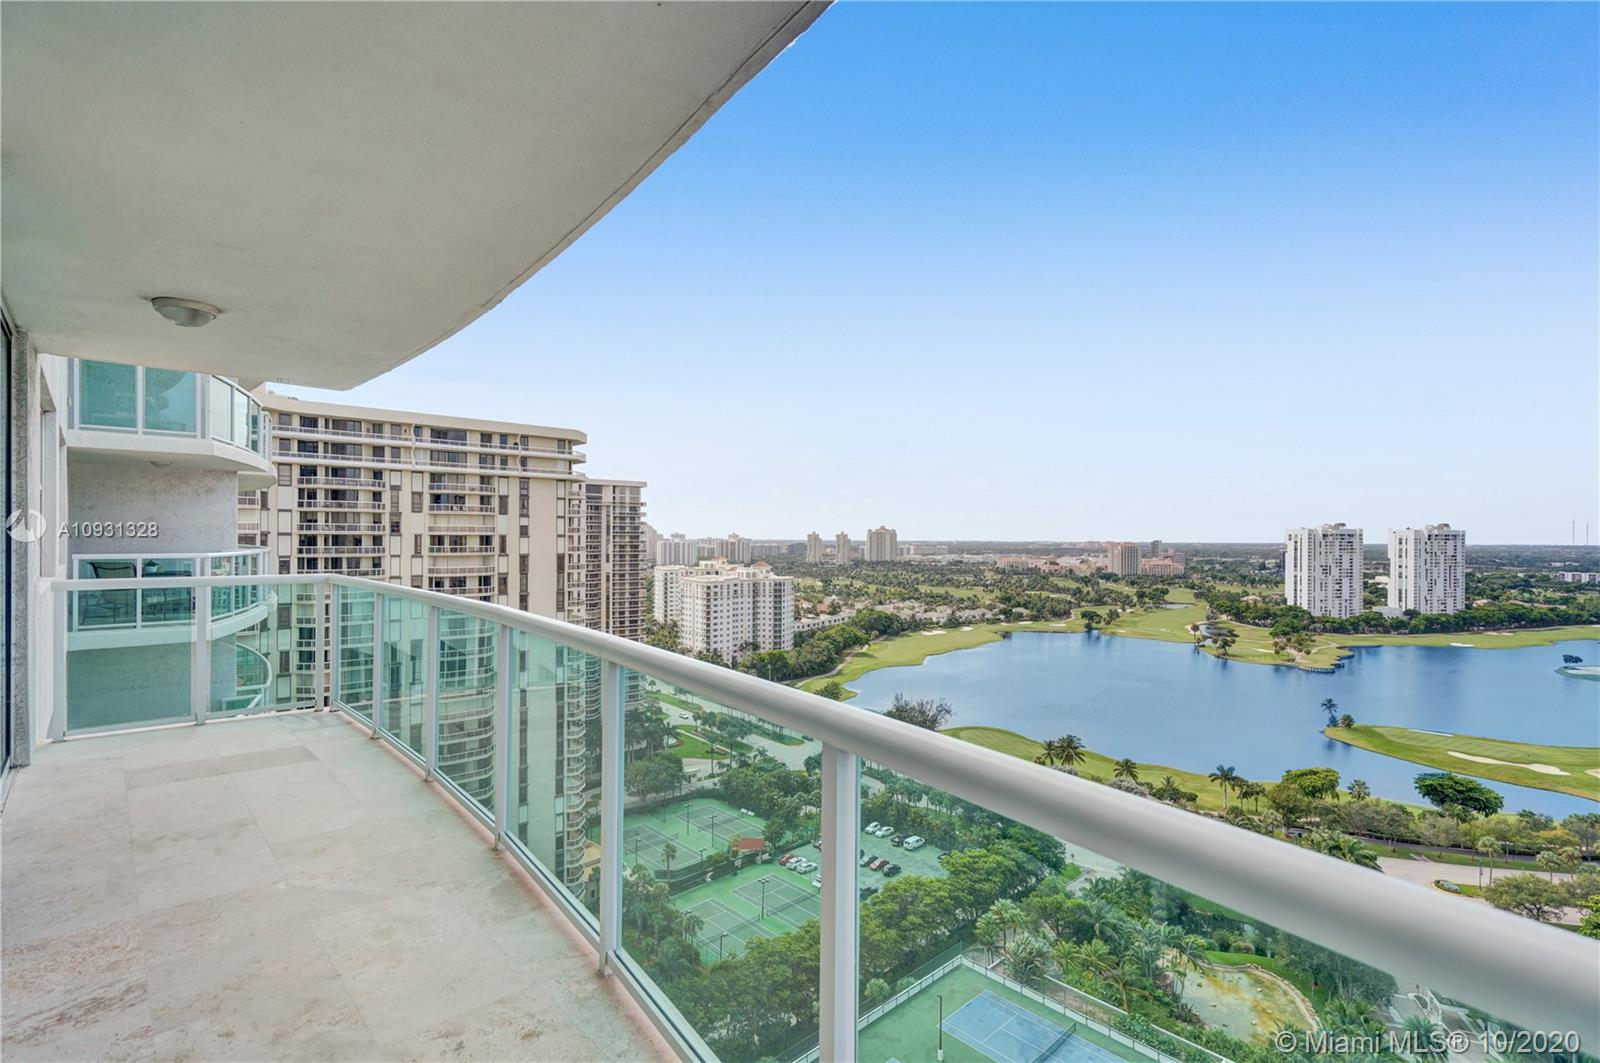 Photo of 20201 Country Club Dr #2407, Aventura, Florida, 33180 - Balcony off the bedrooms.